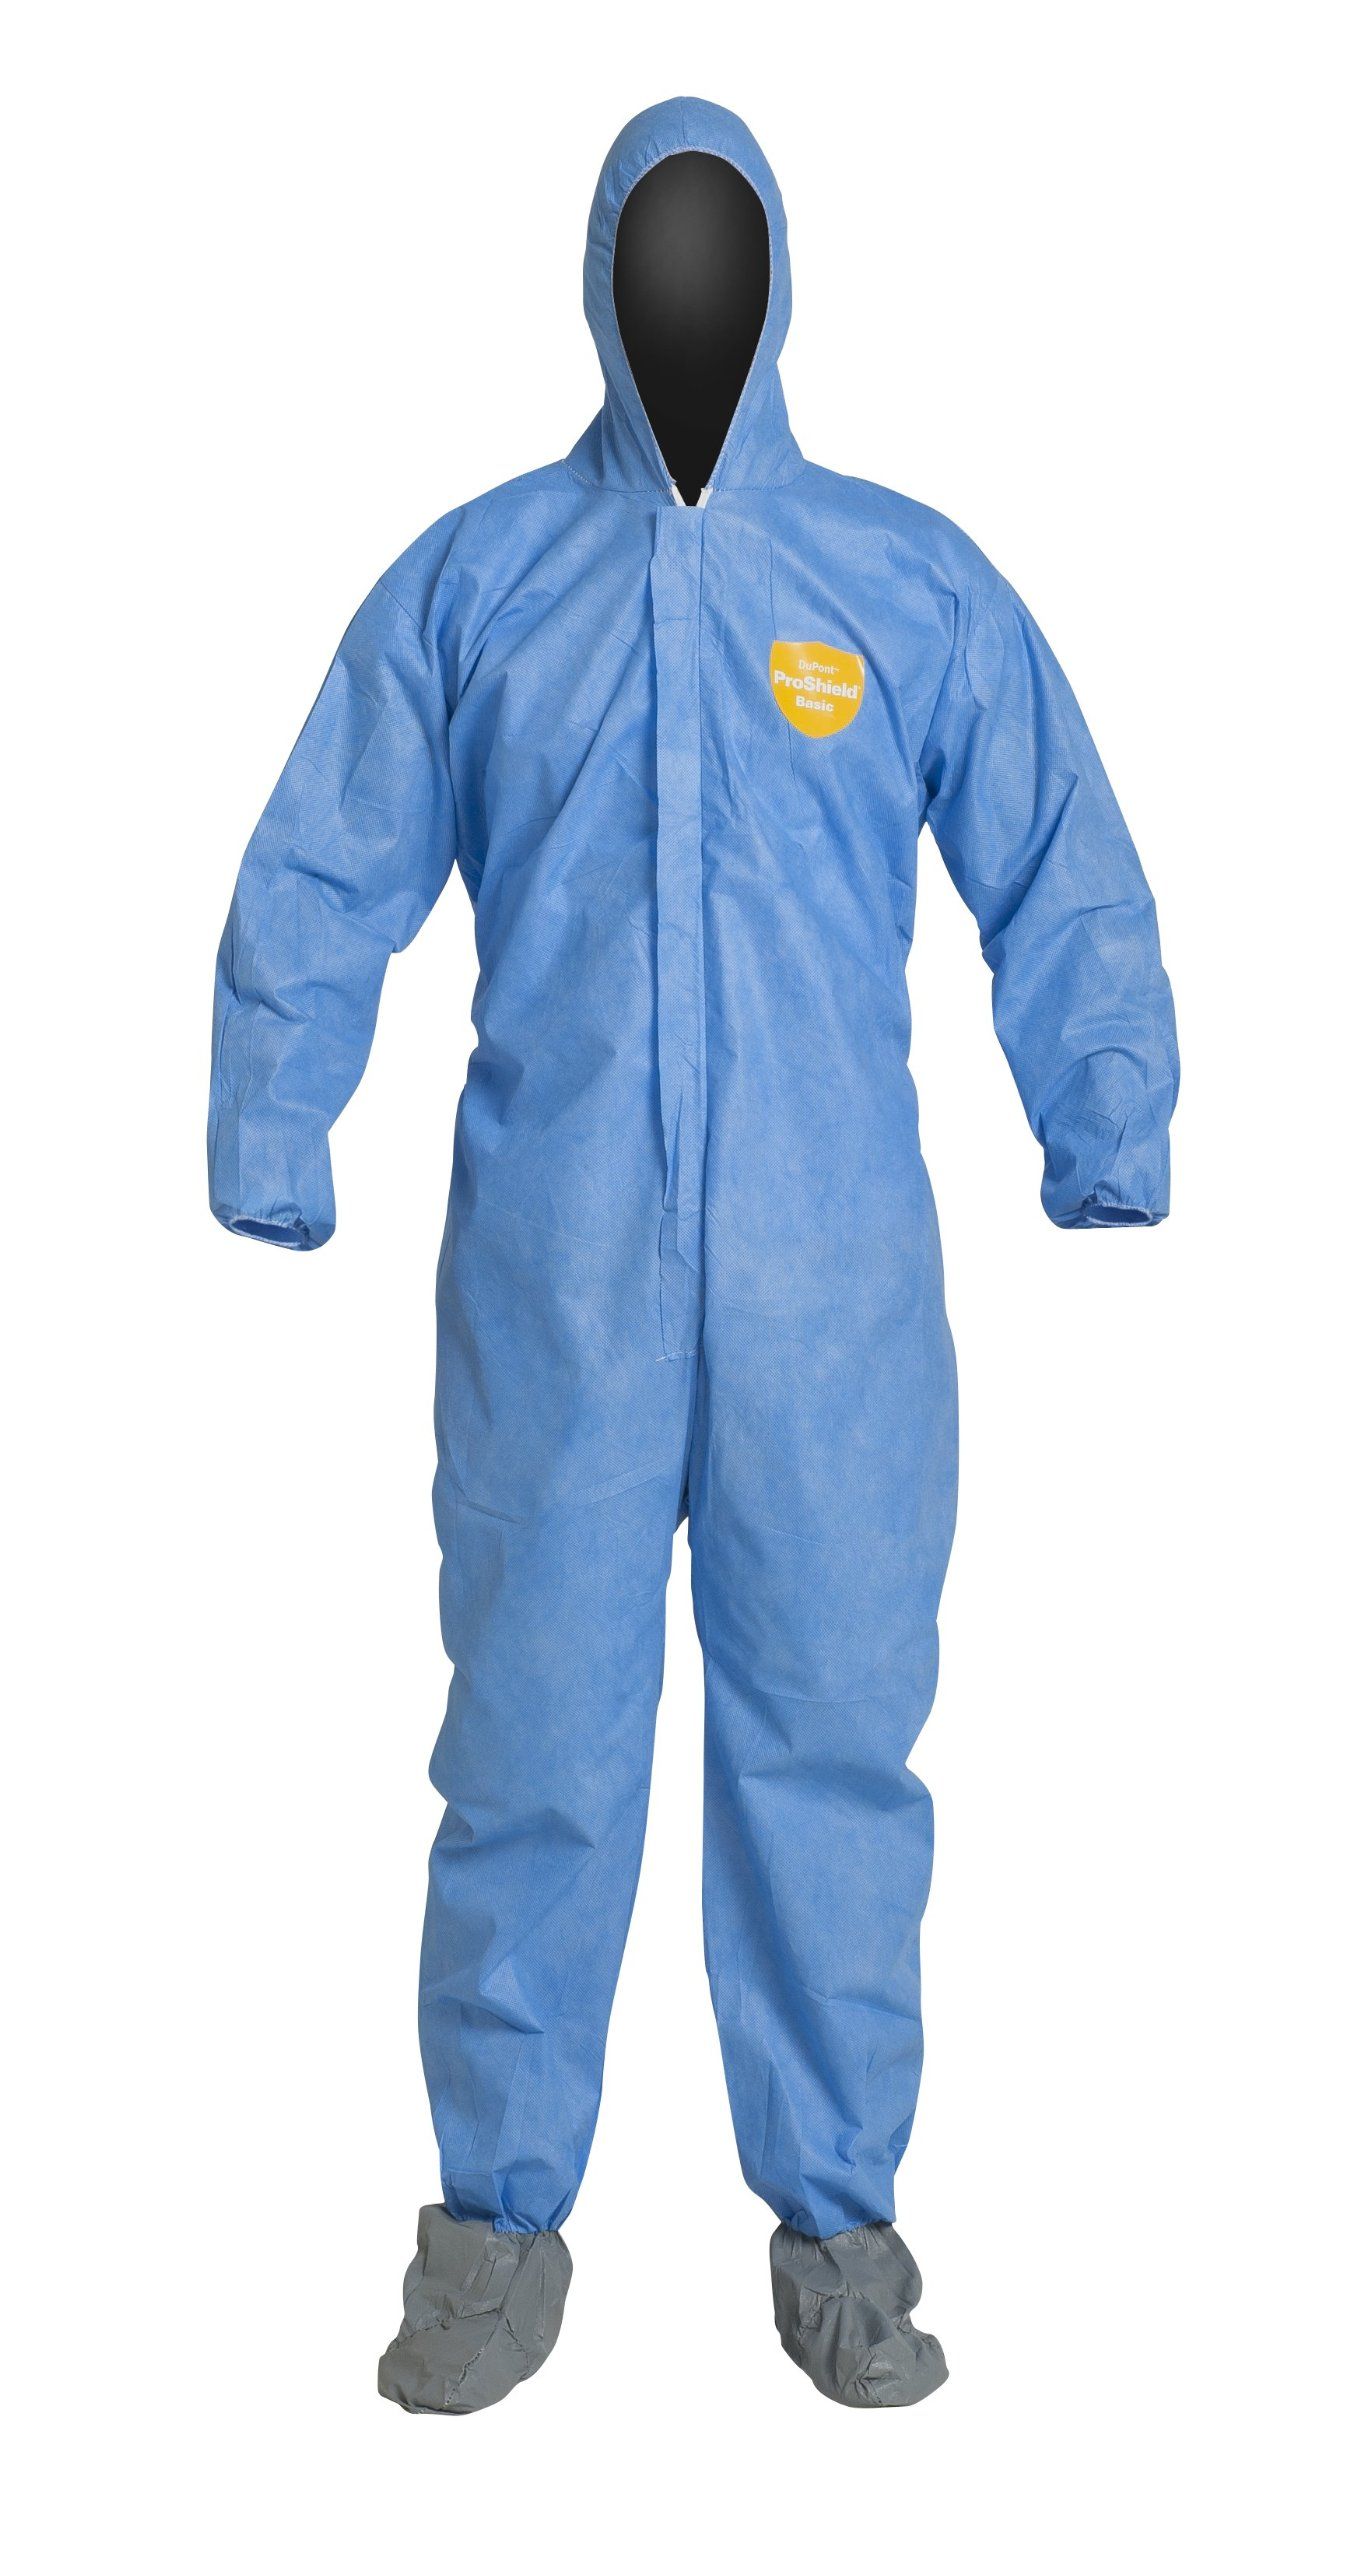 DuPont ProShield 10 PB122S Disposable Protective Coverall with Elastic Cuff, Standard Fit Hood and Attached Skid-Resistant Boots, Blue, 2X-Large (Pack of 25)